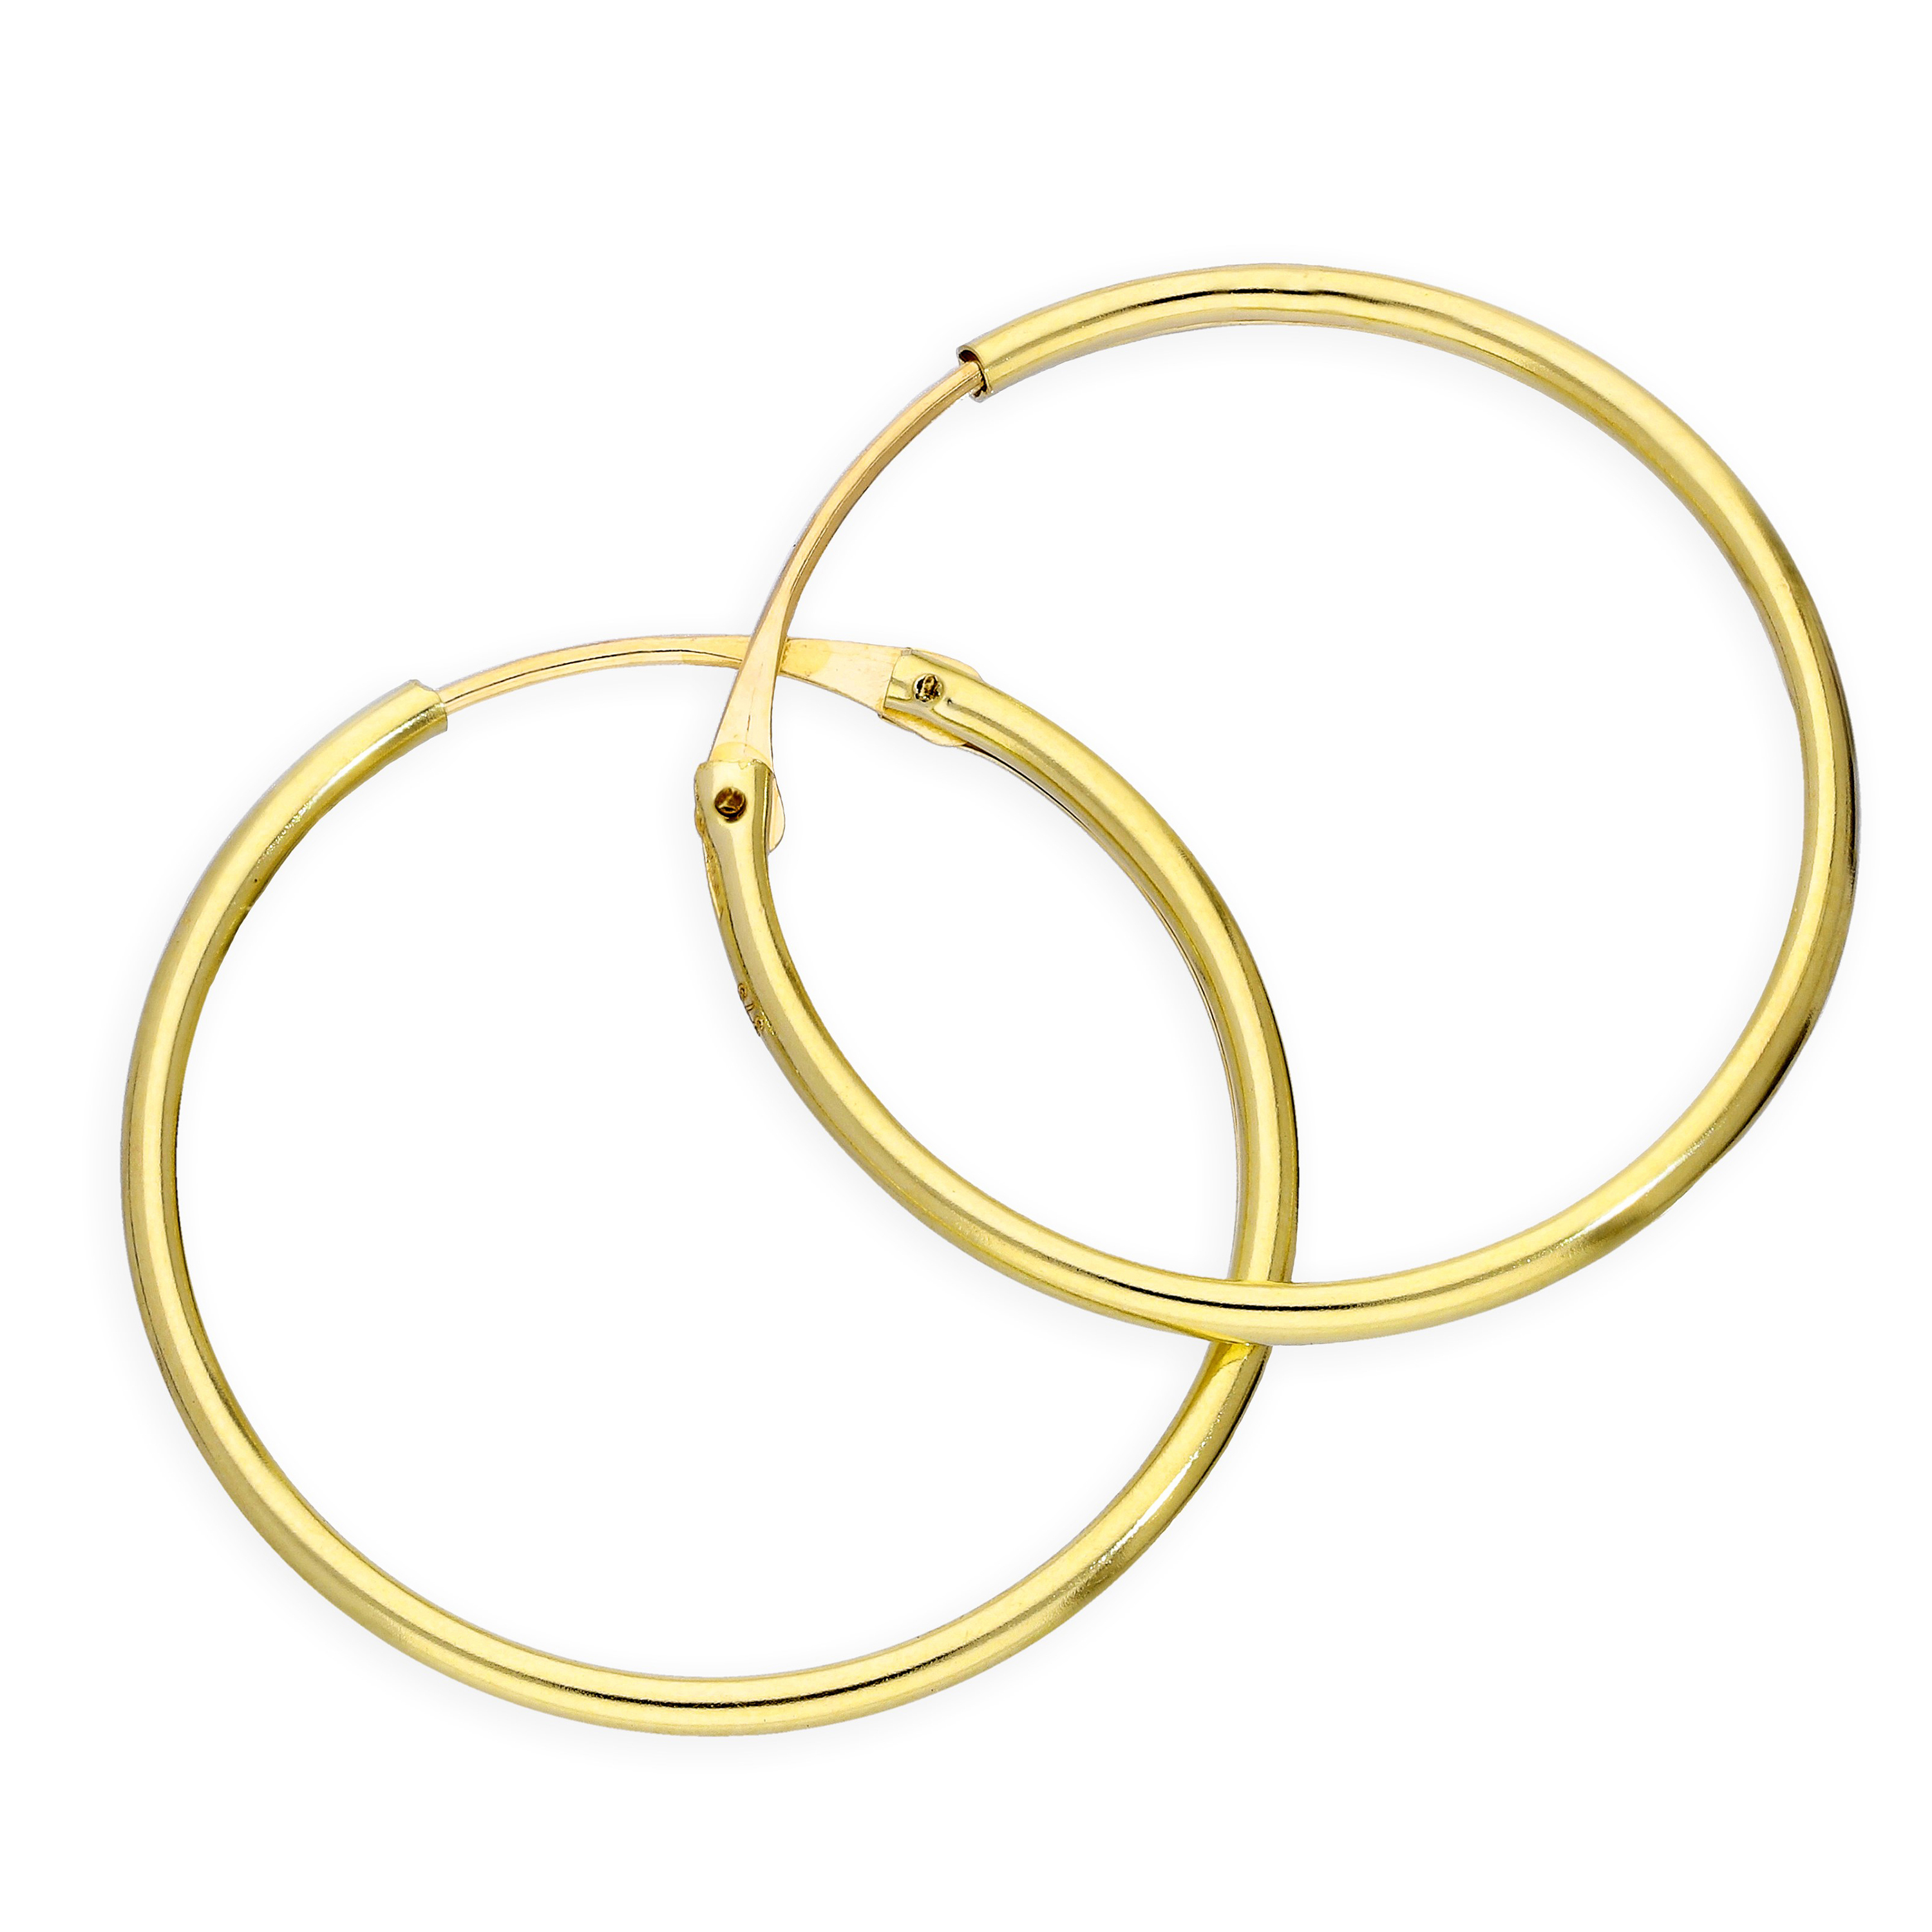 612fa4748fee6 Details about Real 375 9ct Gold 1.2mm Tube Hoop Earrings 8mm - 20mm